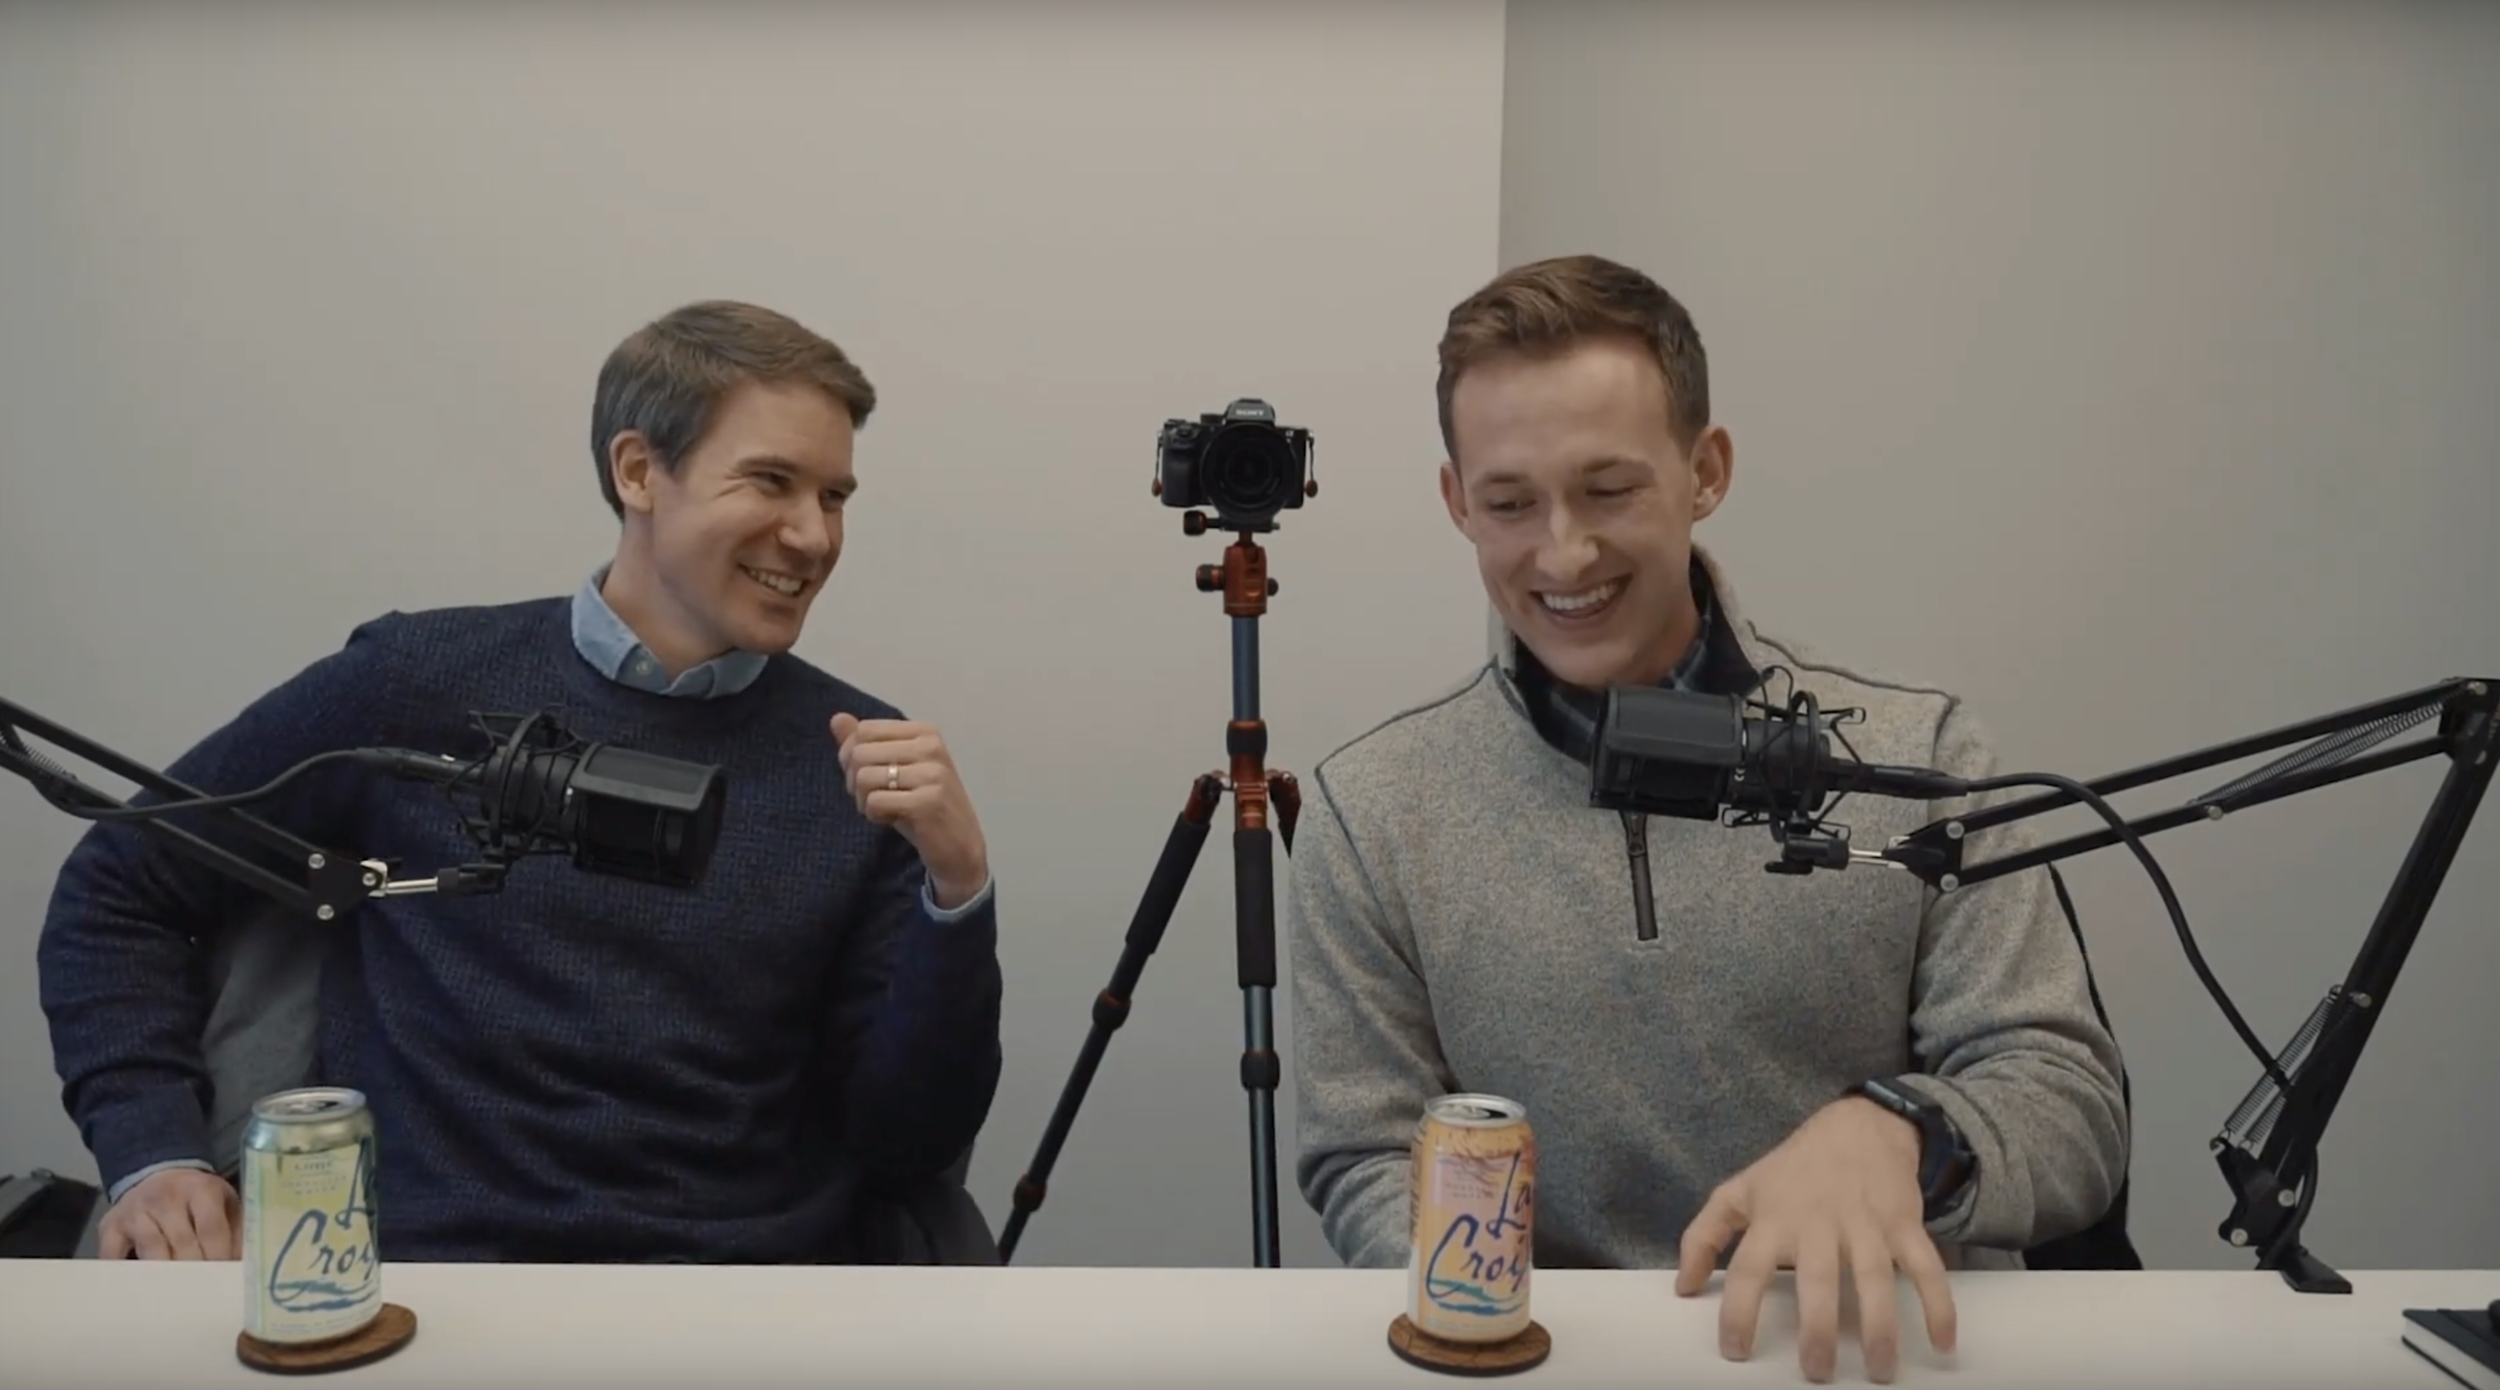 Story of Ken & Sam from B&L - Ken & Sam from Boelter + Lincoln talk about what it takes to build a brand and get media attention.